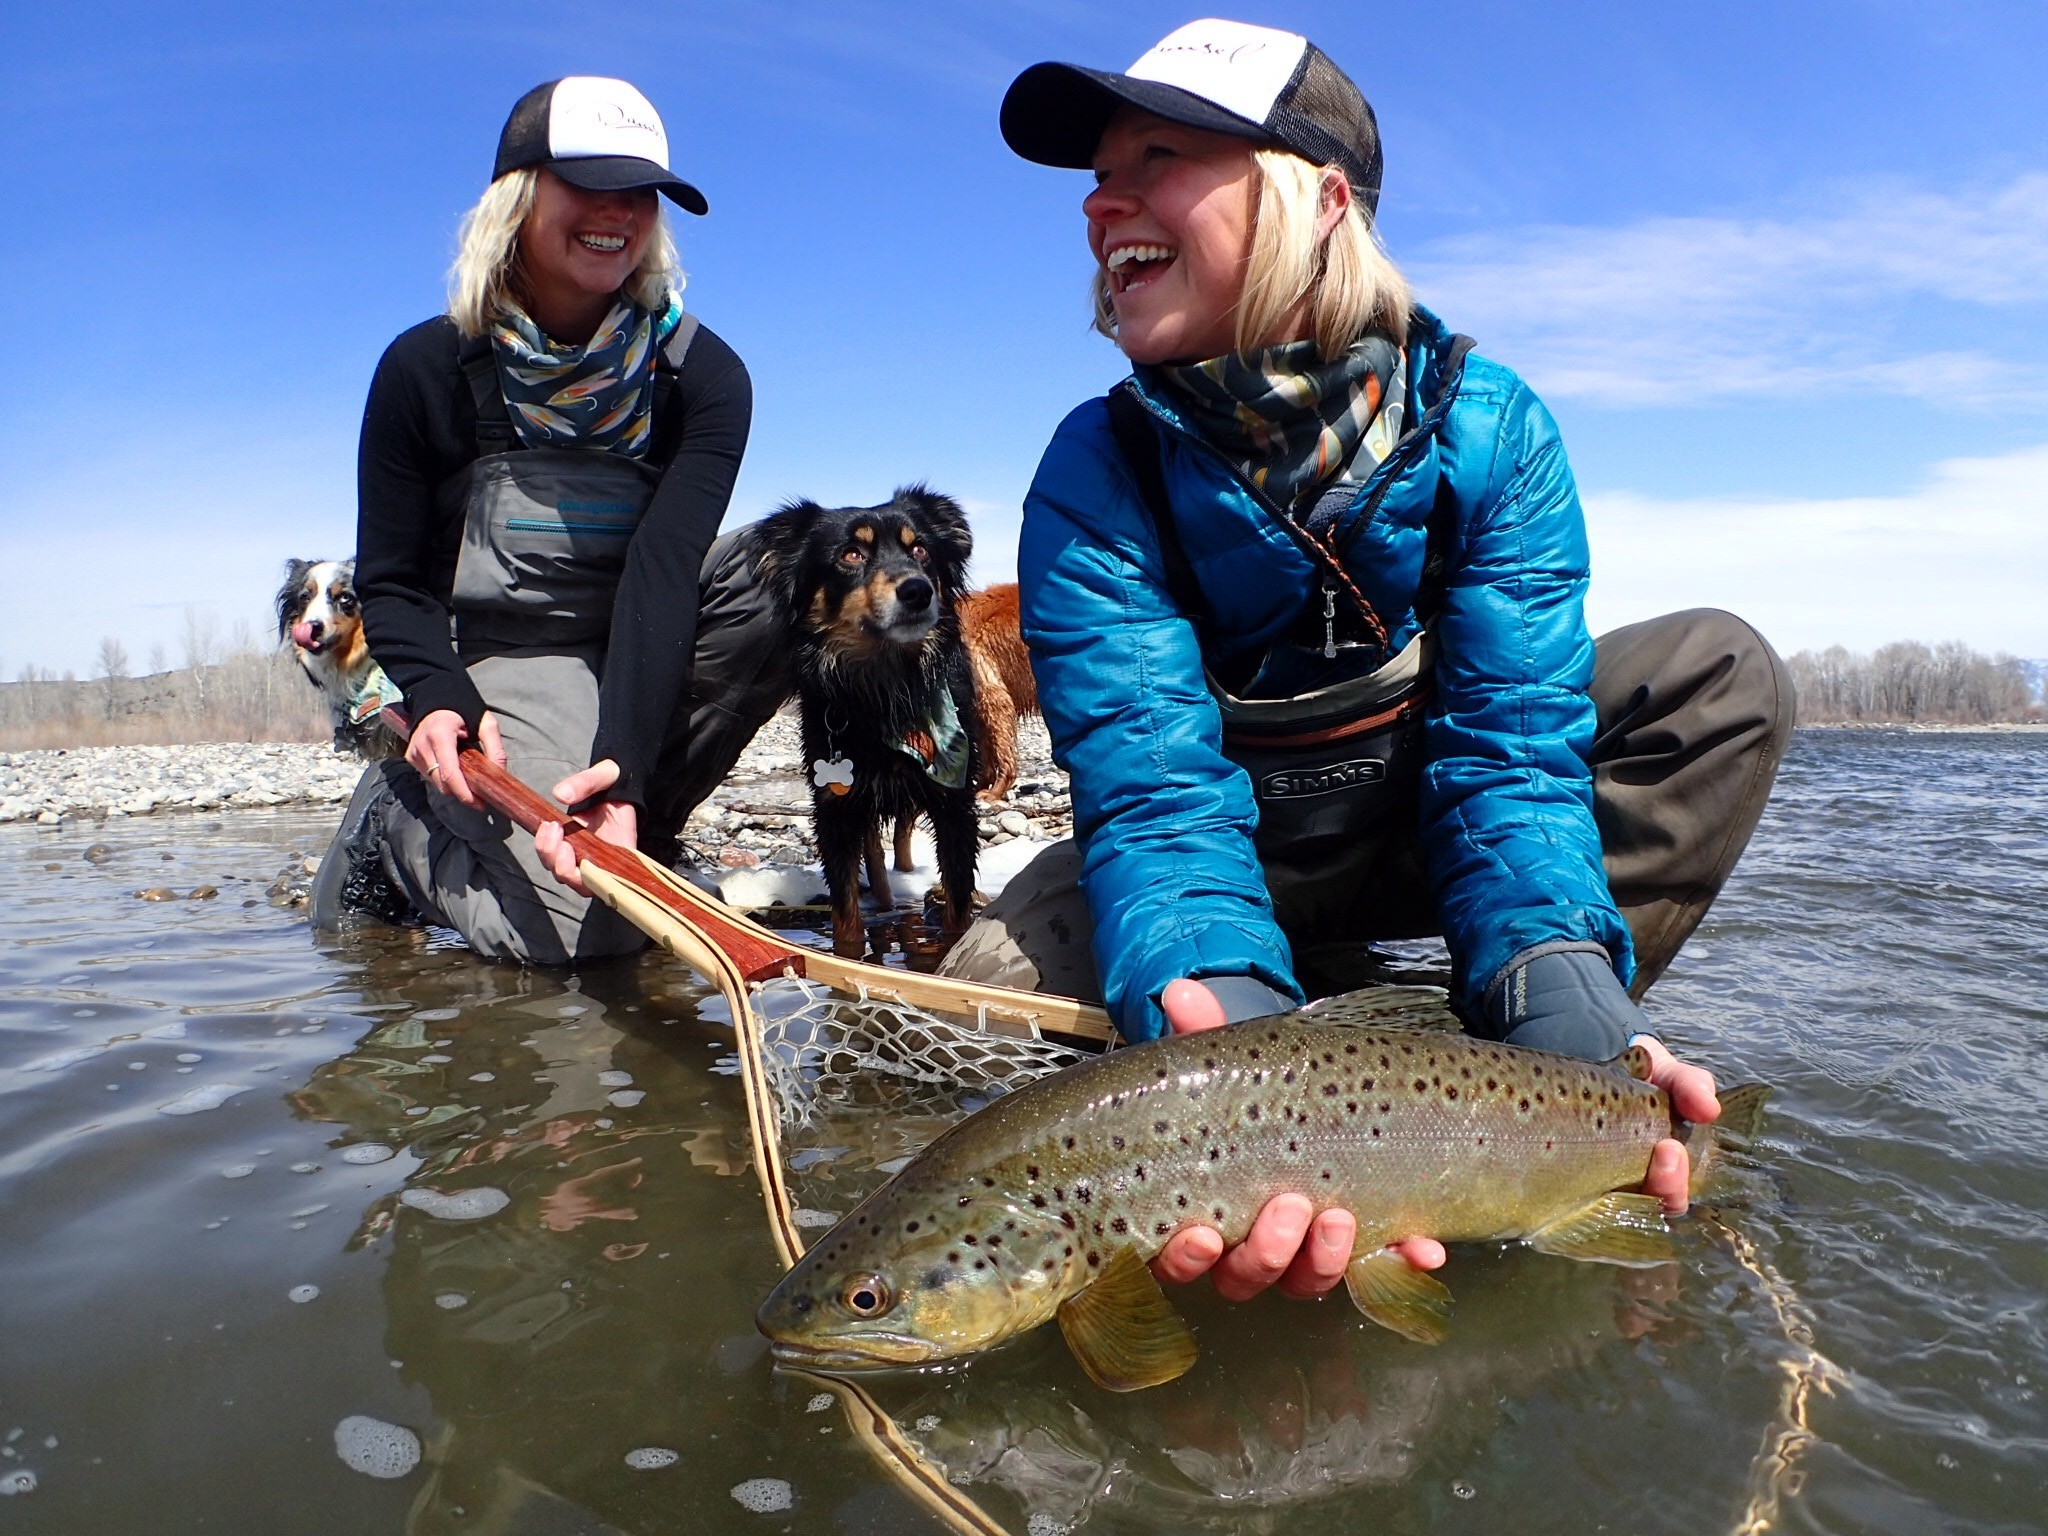 Montana sisters disrupt the fly fishing industry with for Fly fishing girls